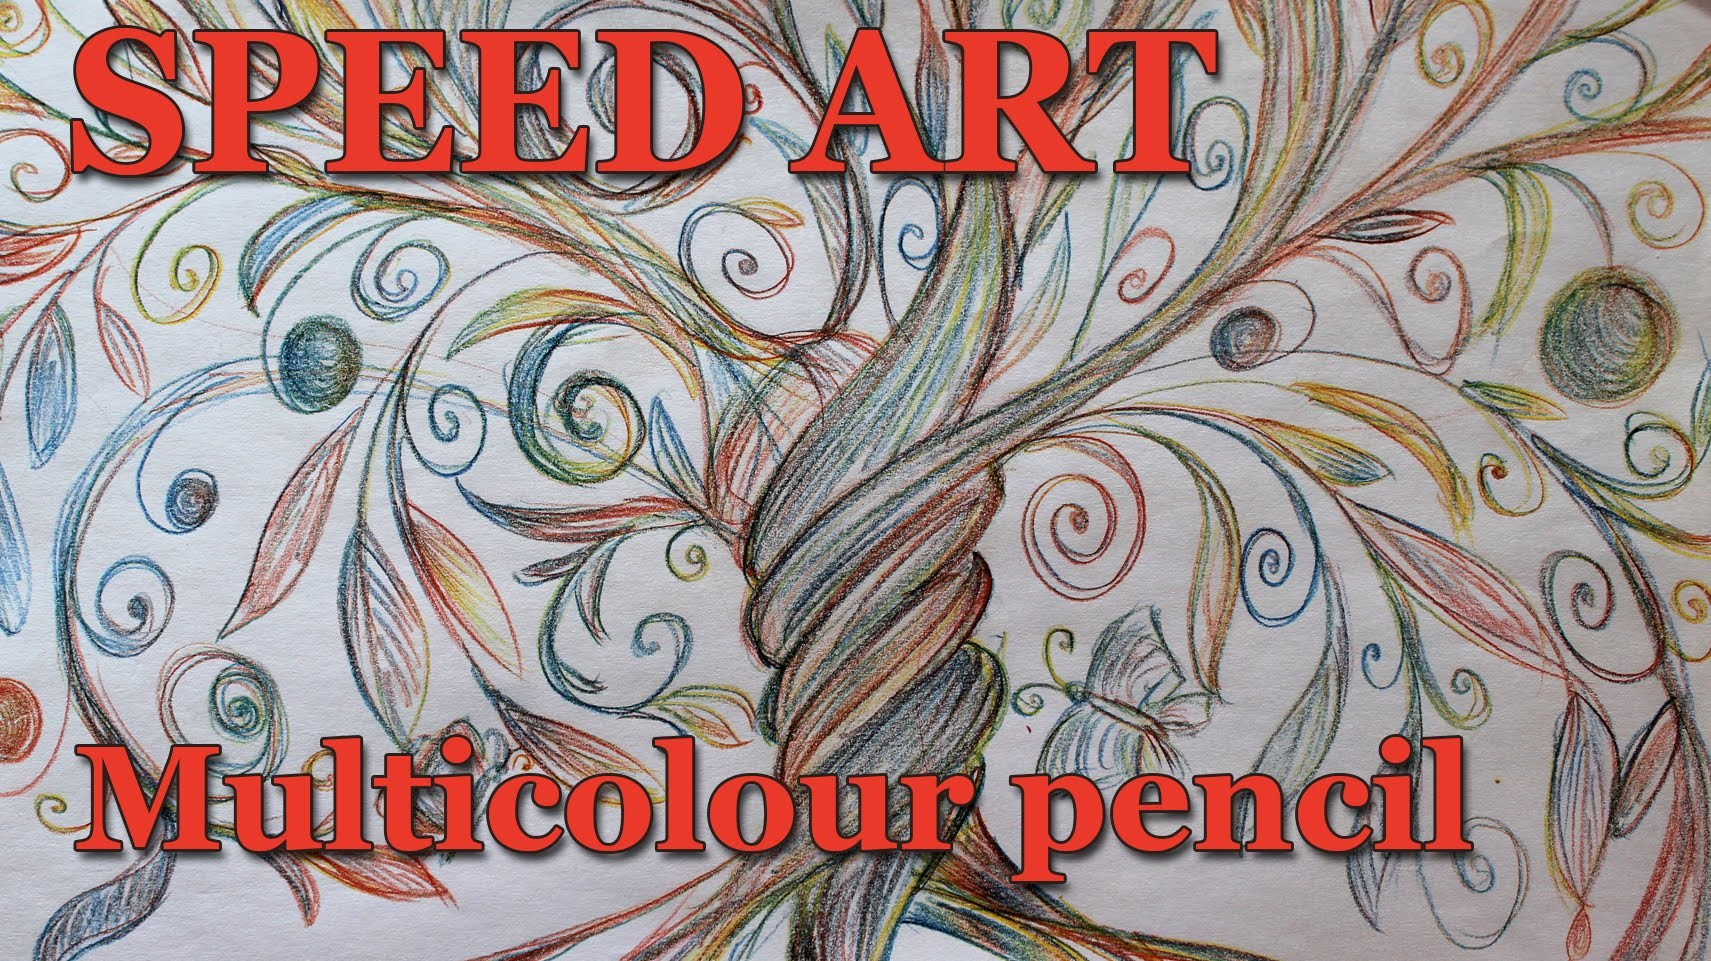 Tree of life -multicolour pencil - speed art, speed drawing, time lapse painting